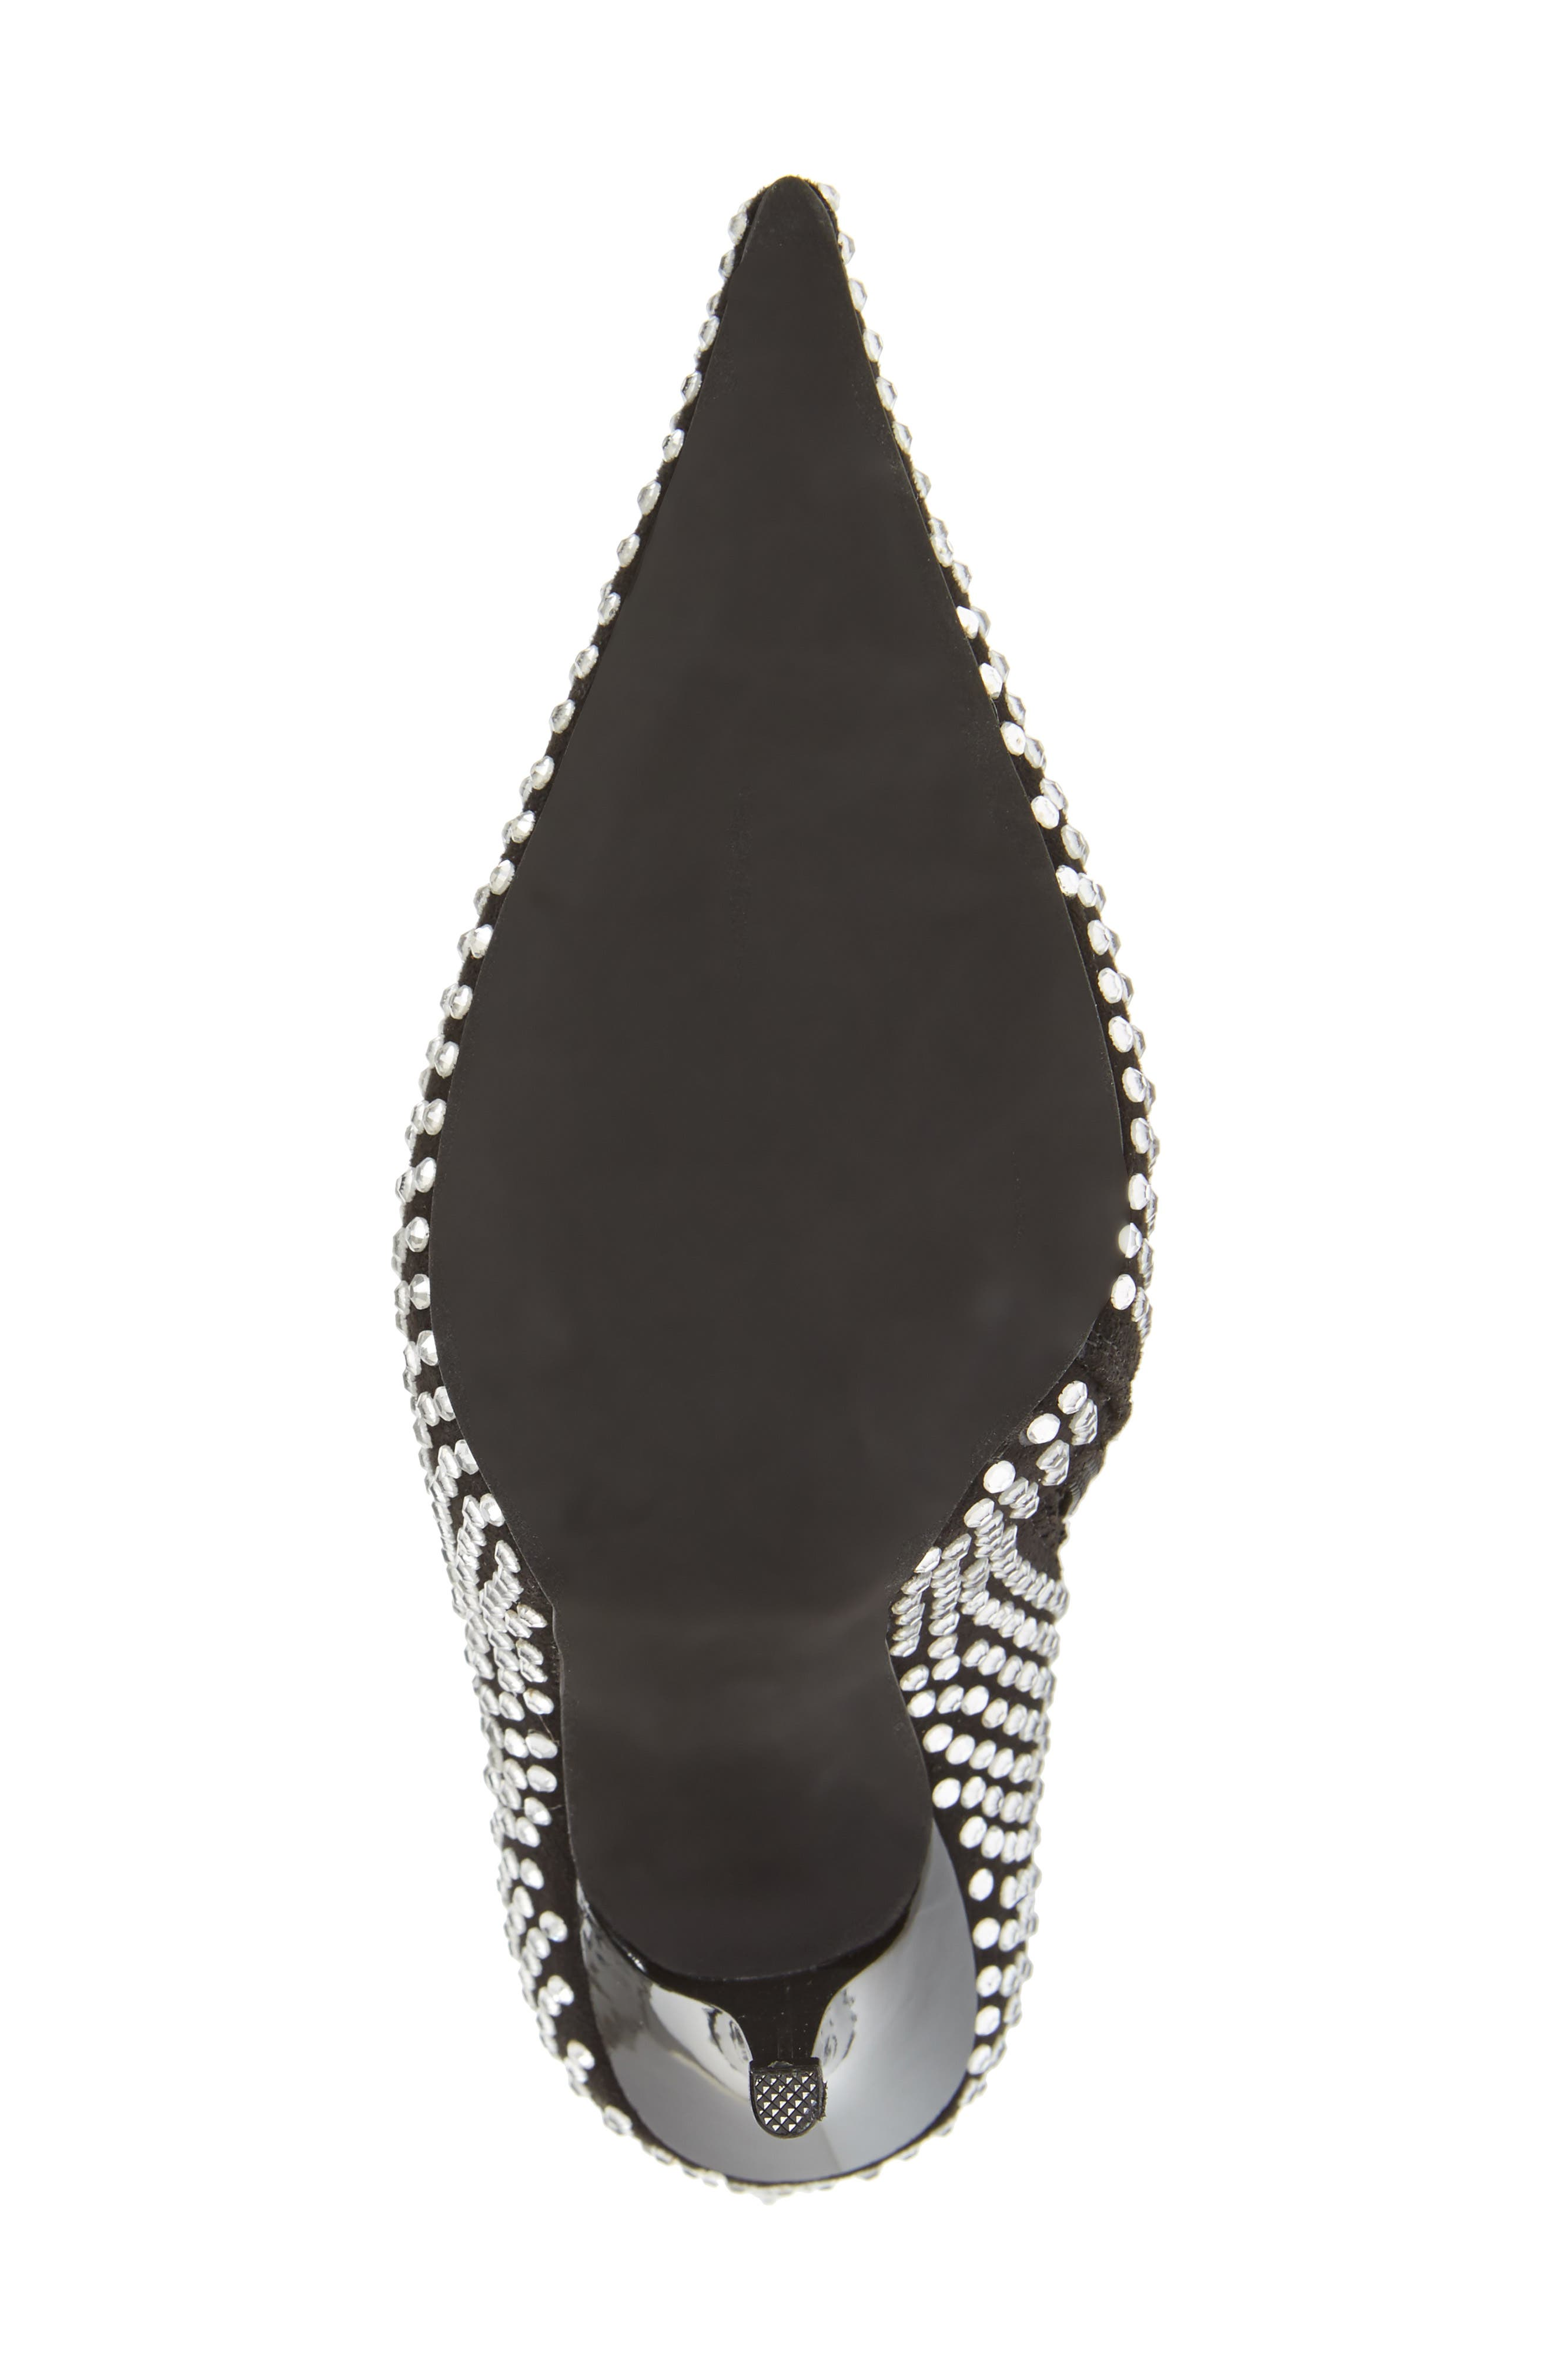 Cry4U Bootie,                             Alternate thumbnail 6, color,                             Black Suede Silver